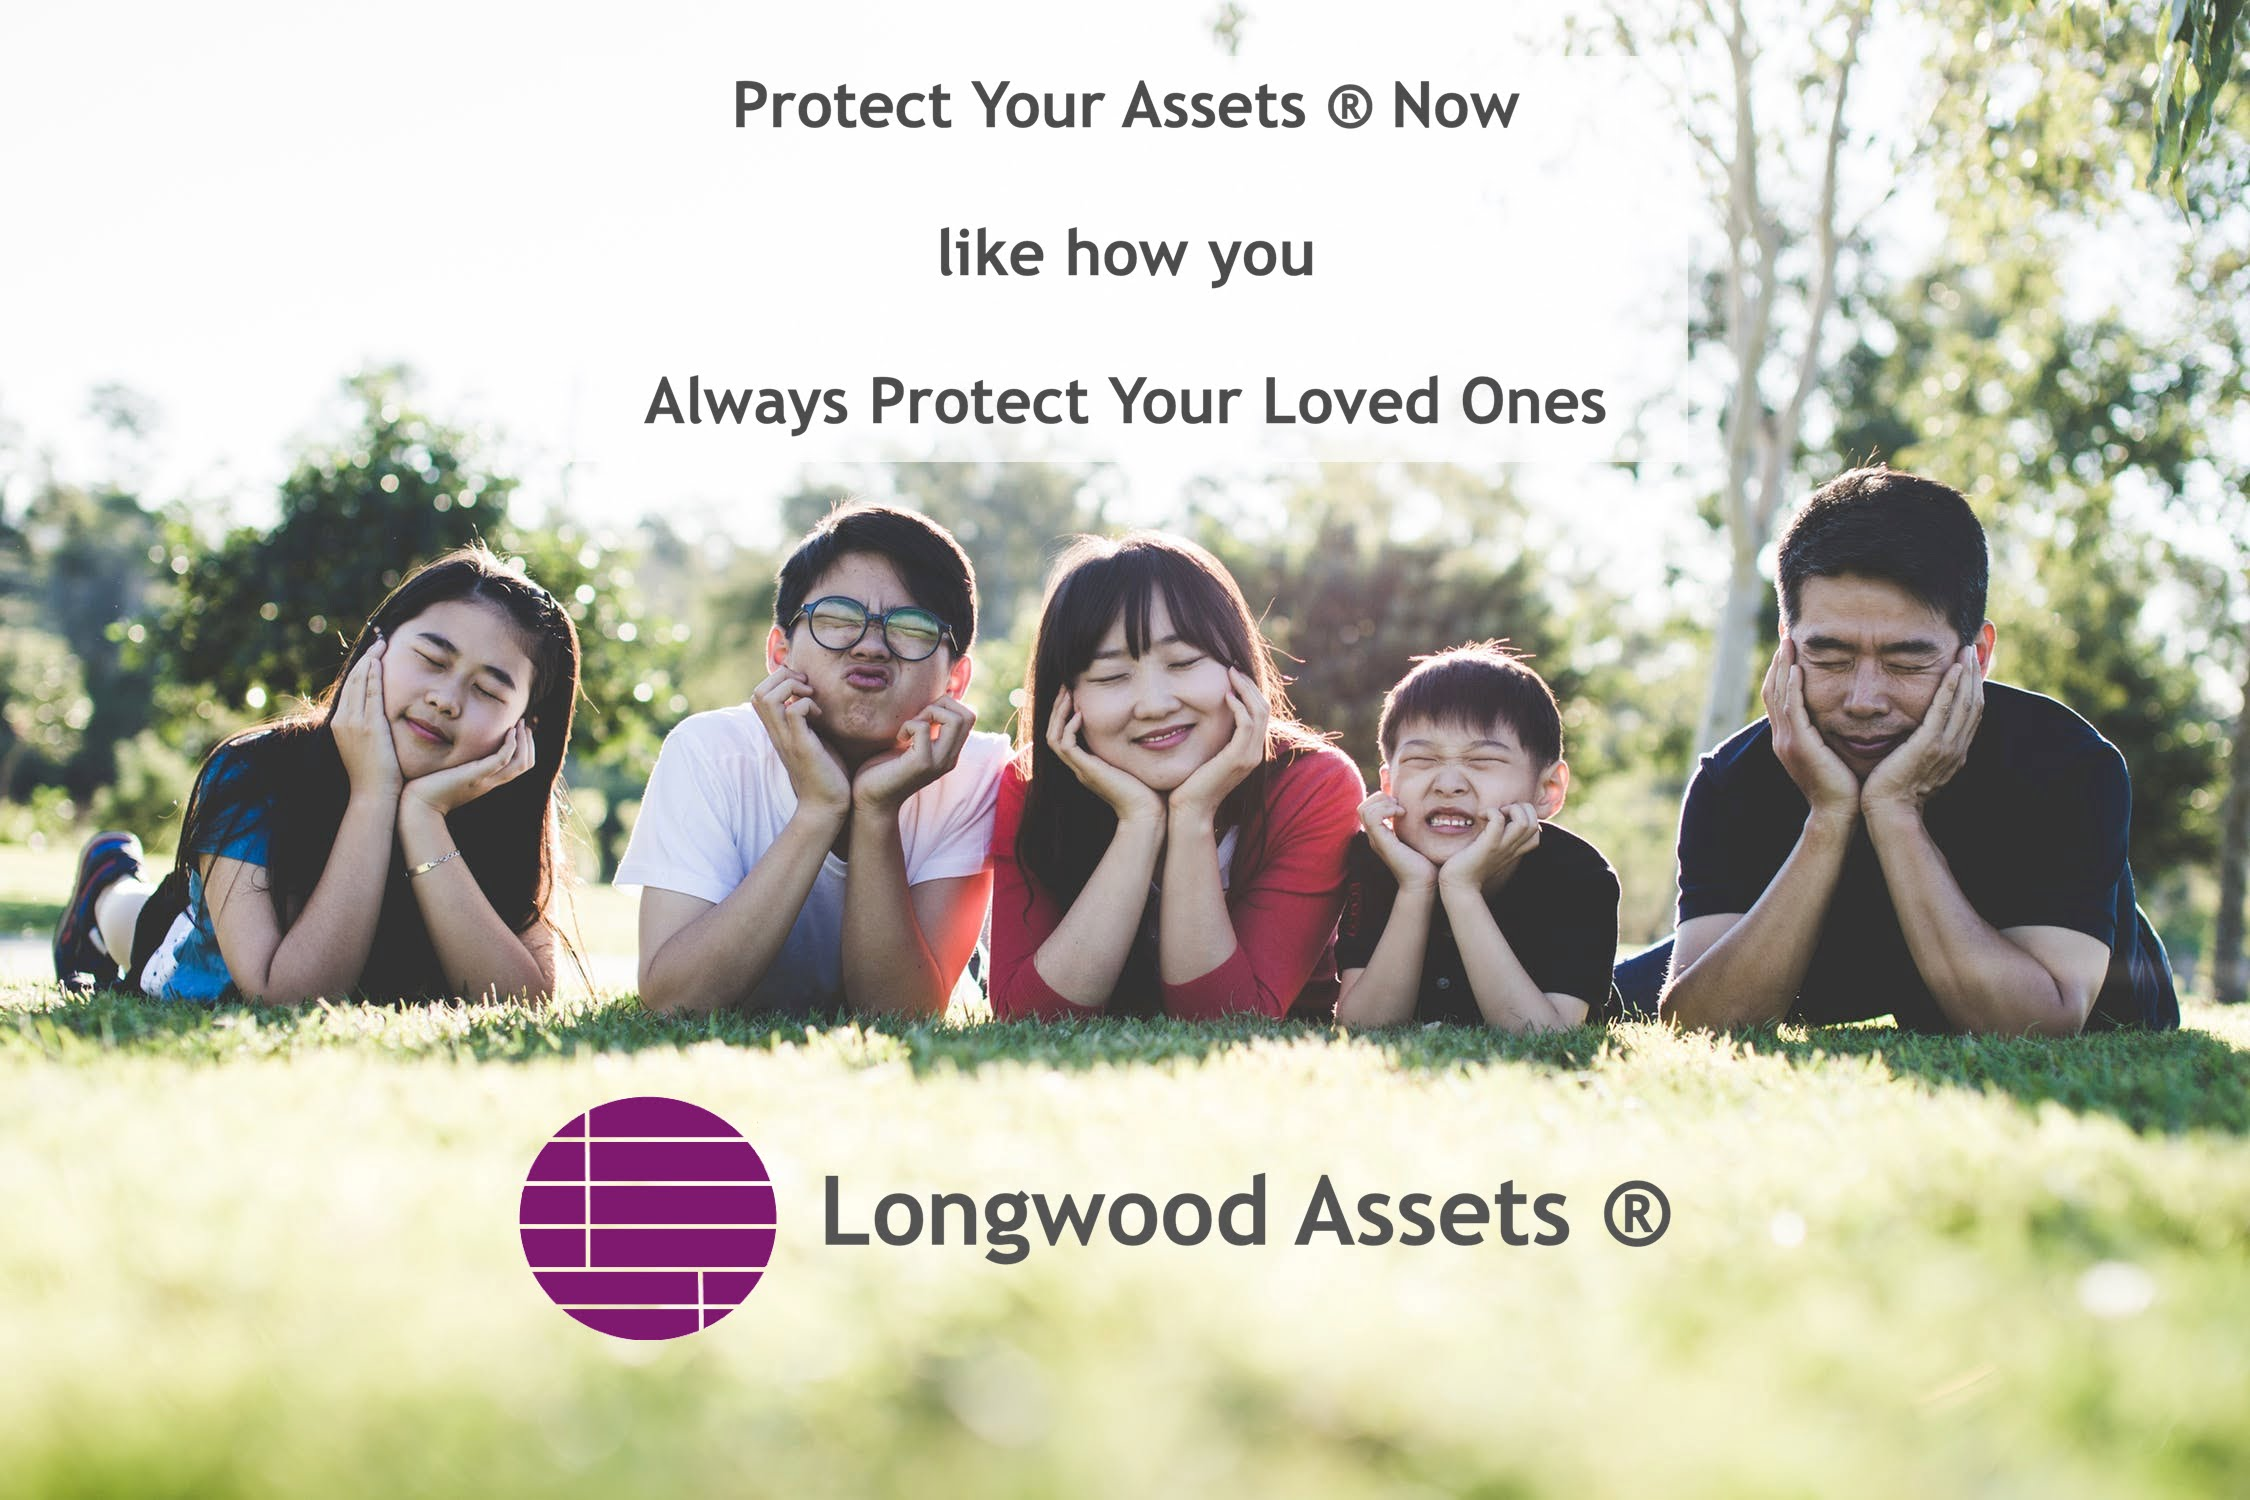 Protect Your Assets Like How You Always Protect Your Loved Ones